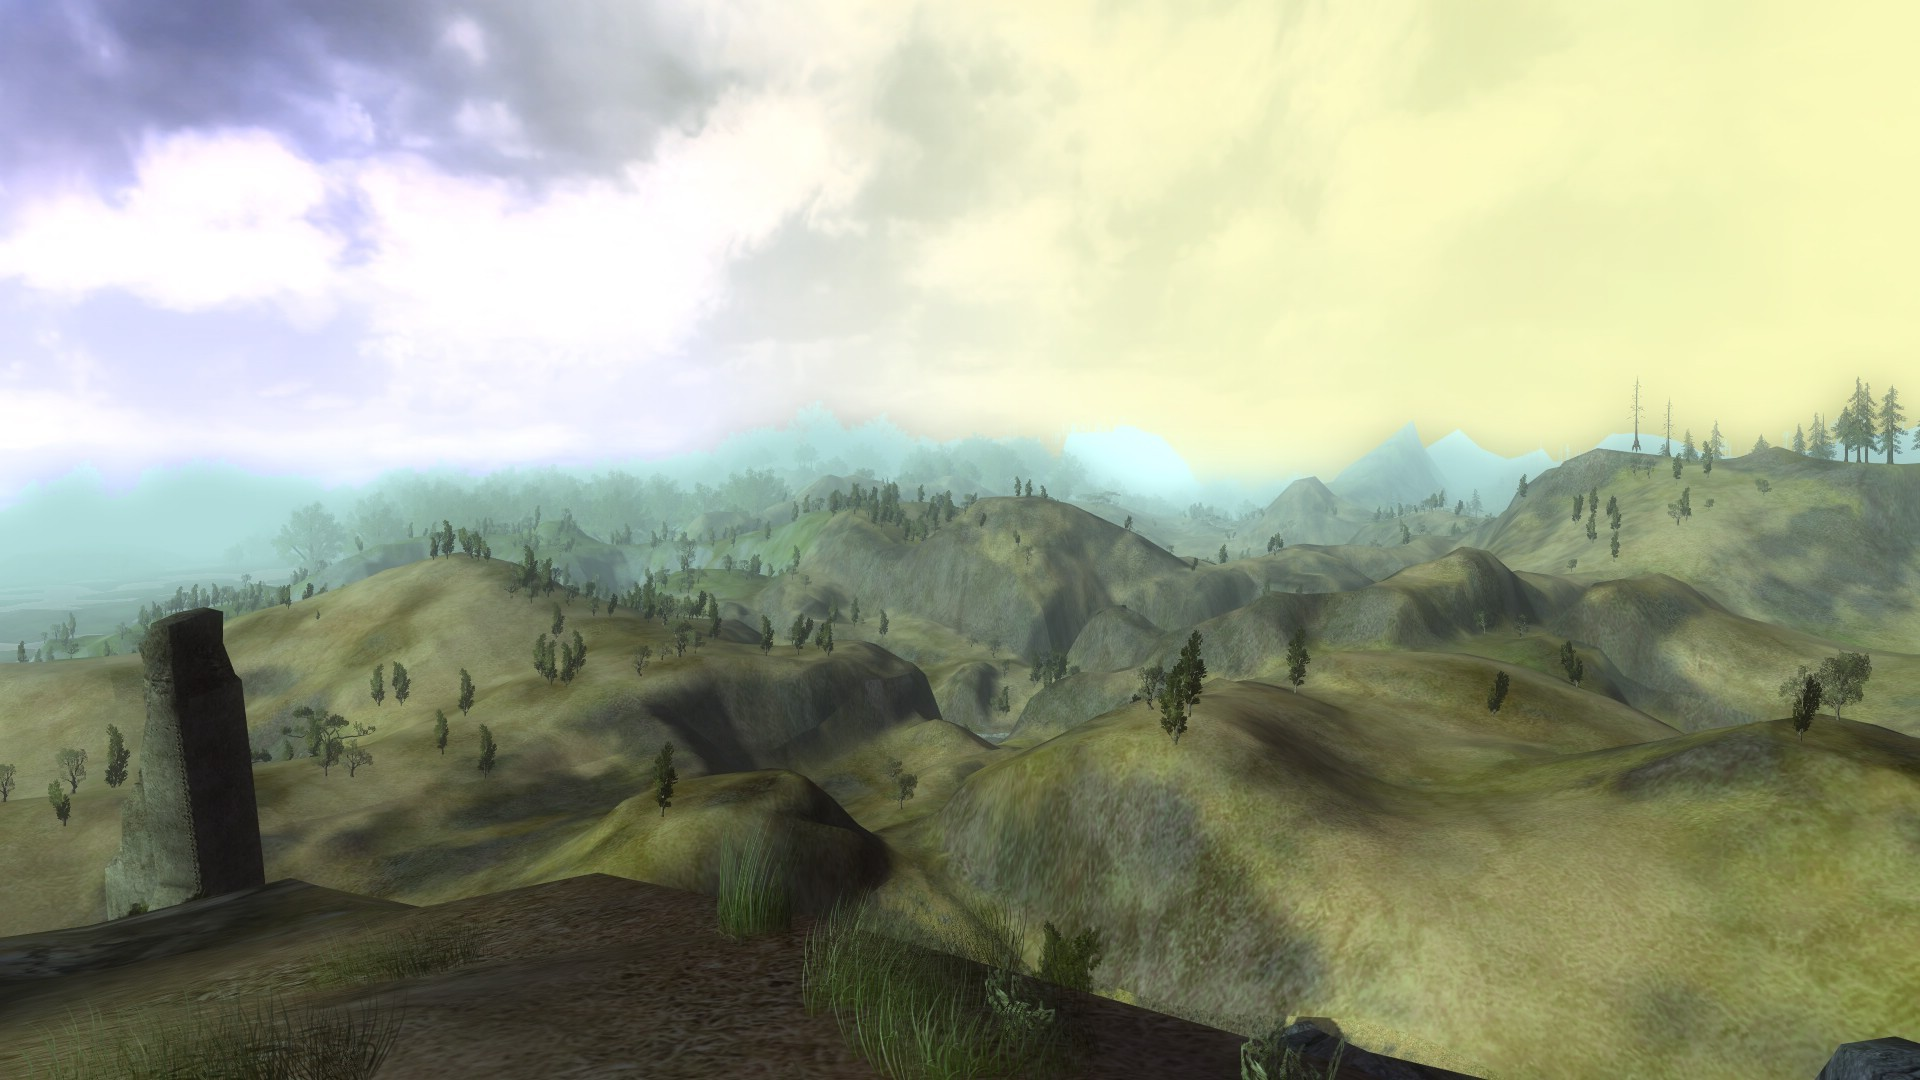 Lord of the Rings Online - Trying to see the end of the world :P